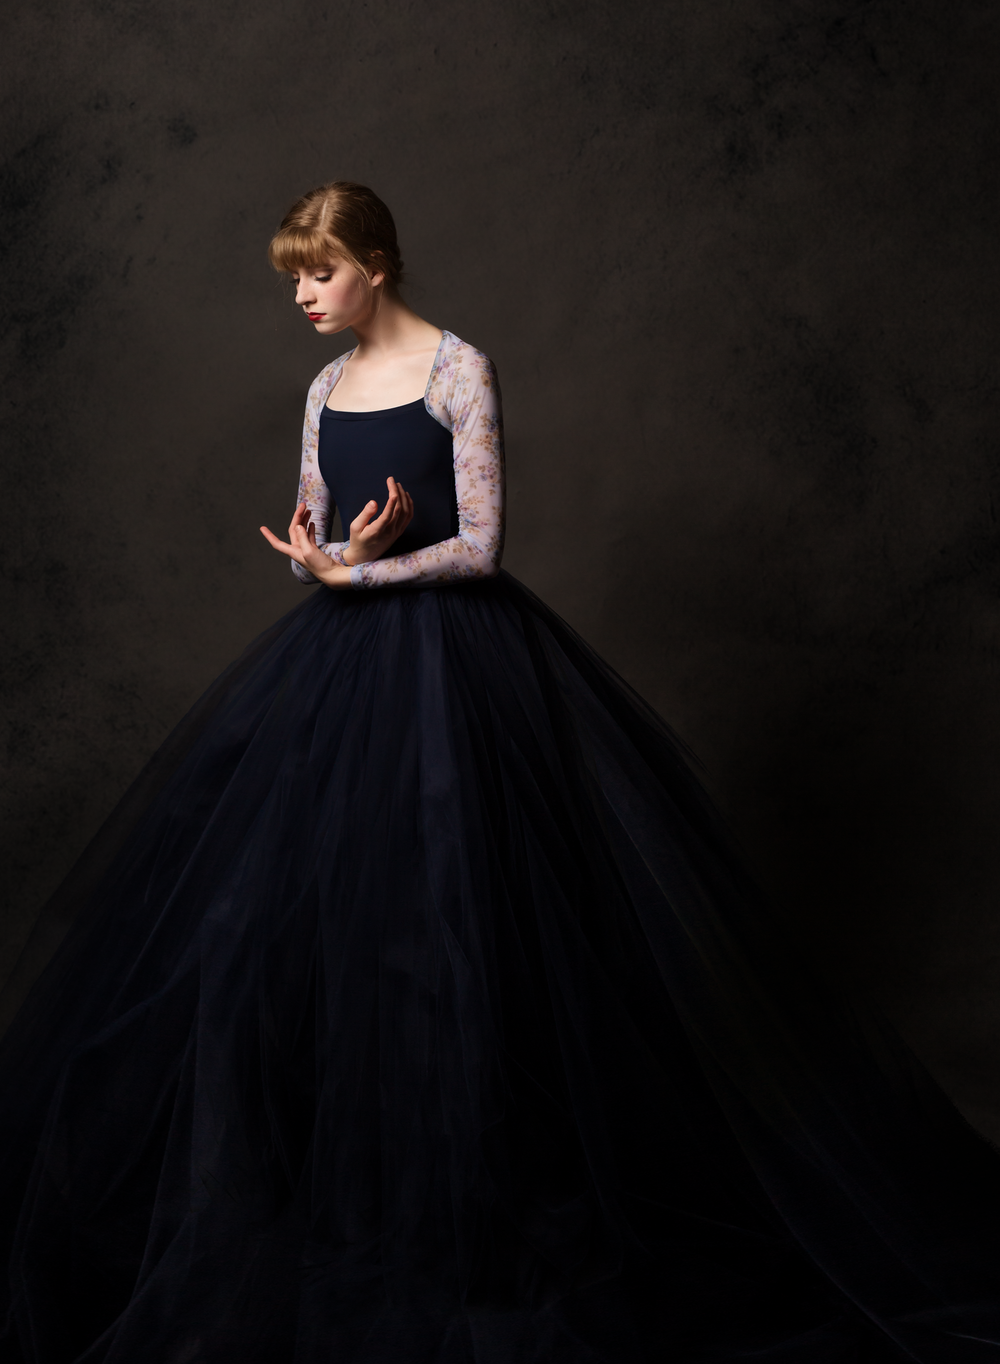 2666-Big-Claire-dress-Edit.png